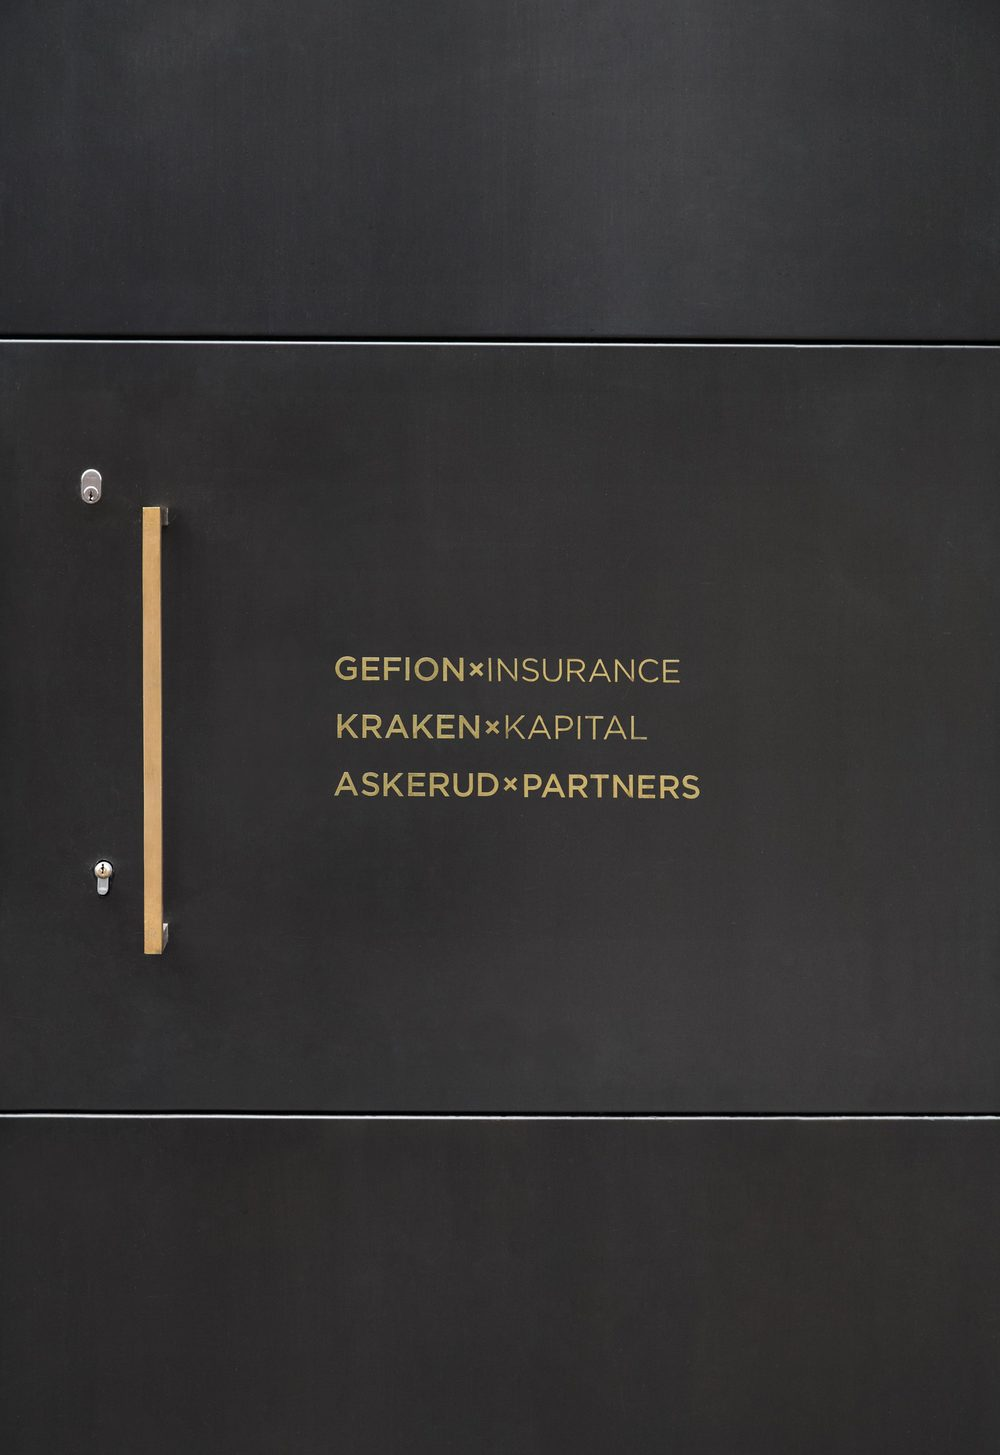 The heavy black front door to Gefion's office carrying company names in brass